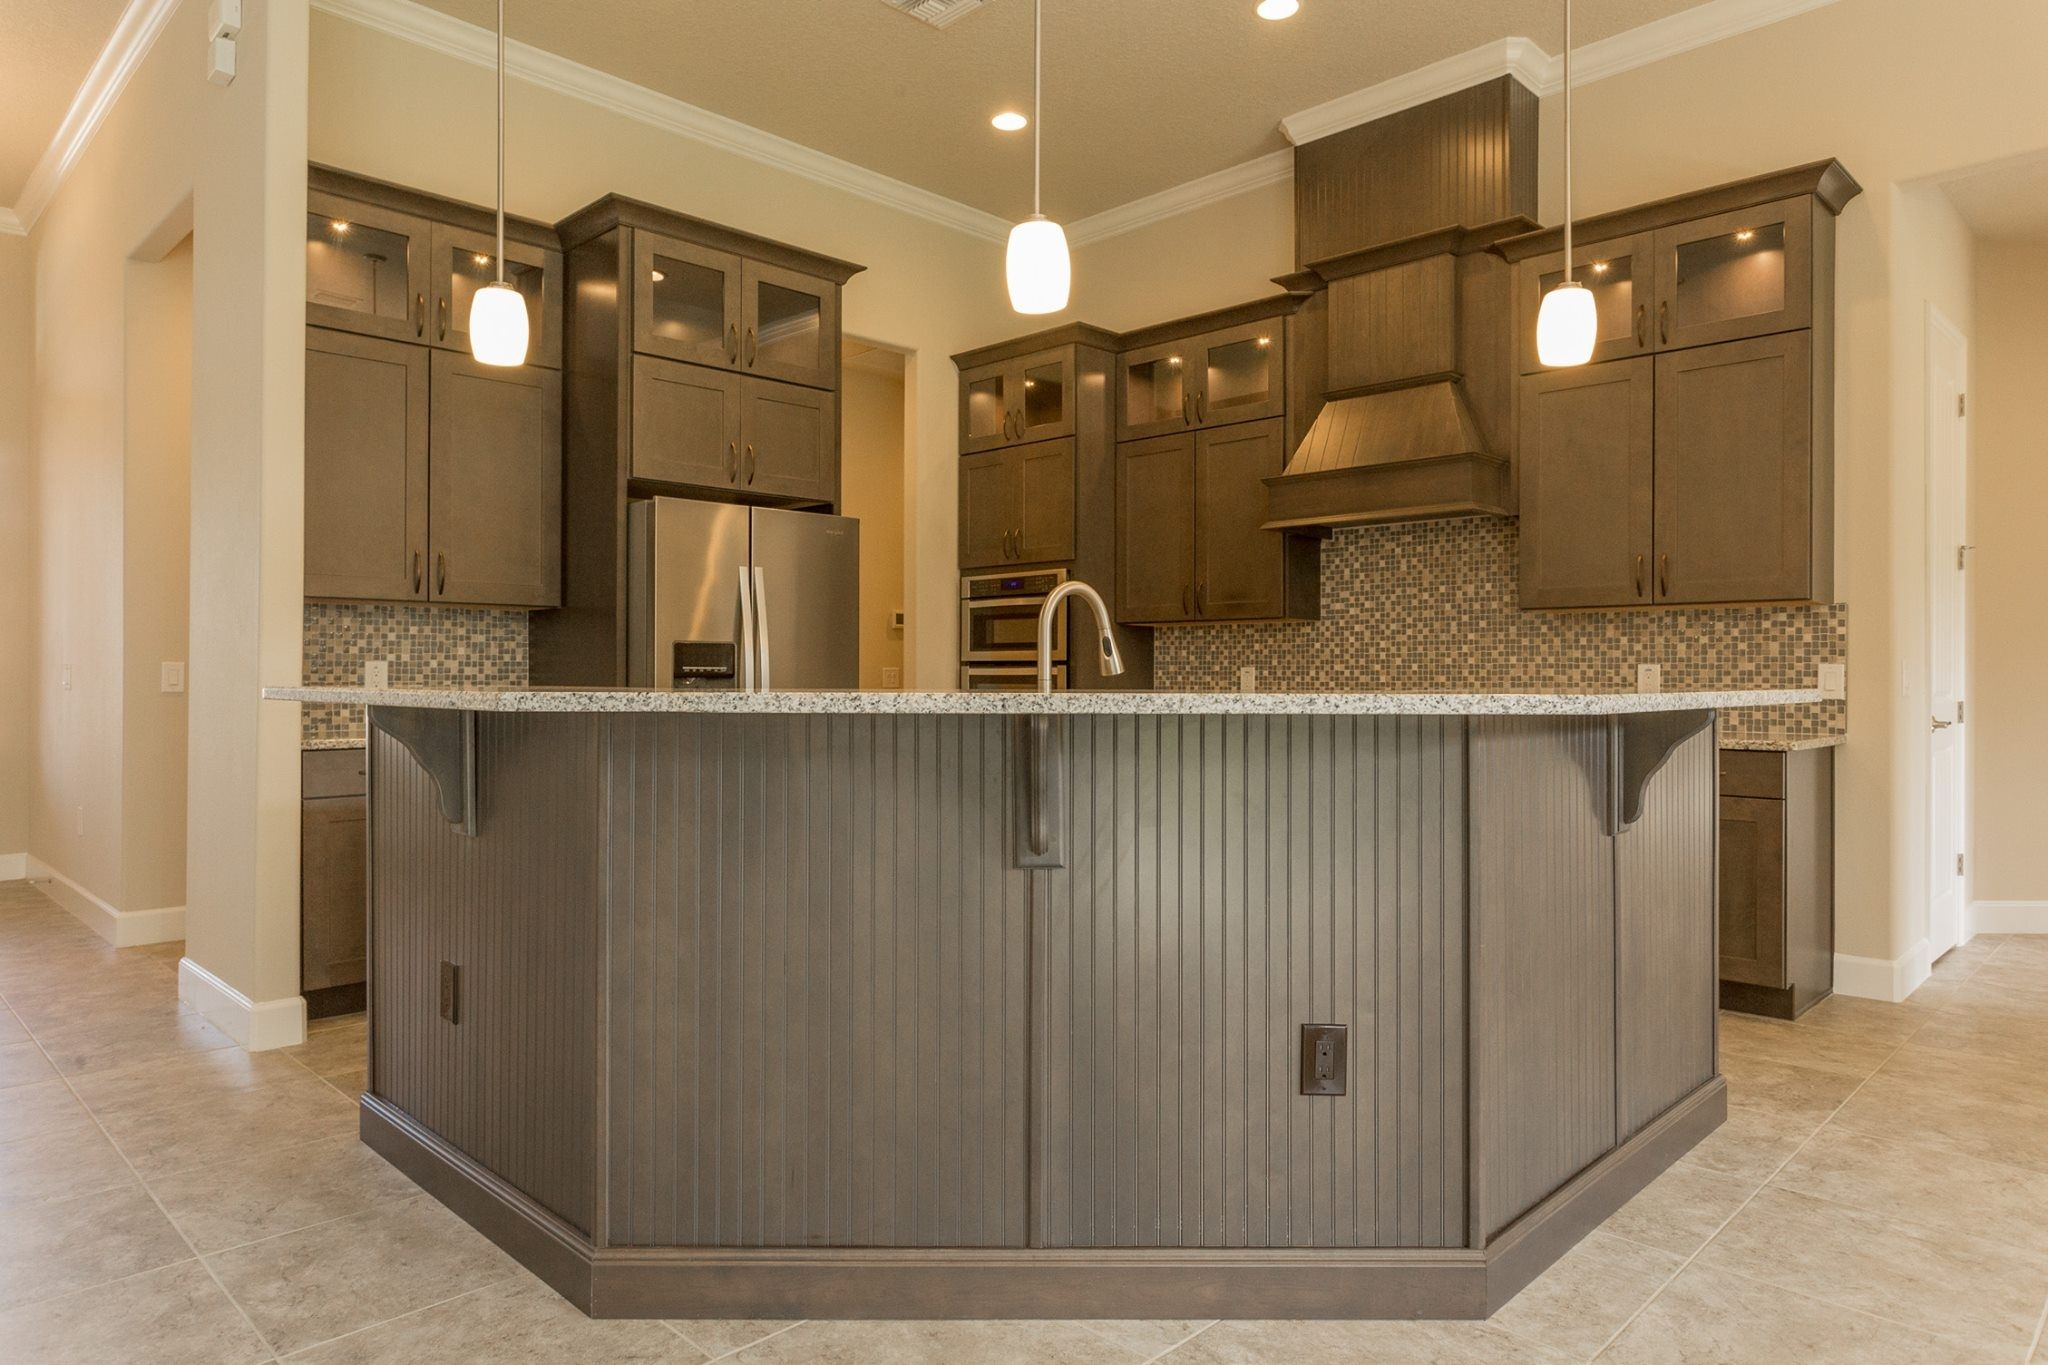 Marsh Kitchen Cabinets   Kitchen Decorating Ideas On A Budget Check More At  Http:/